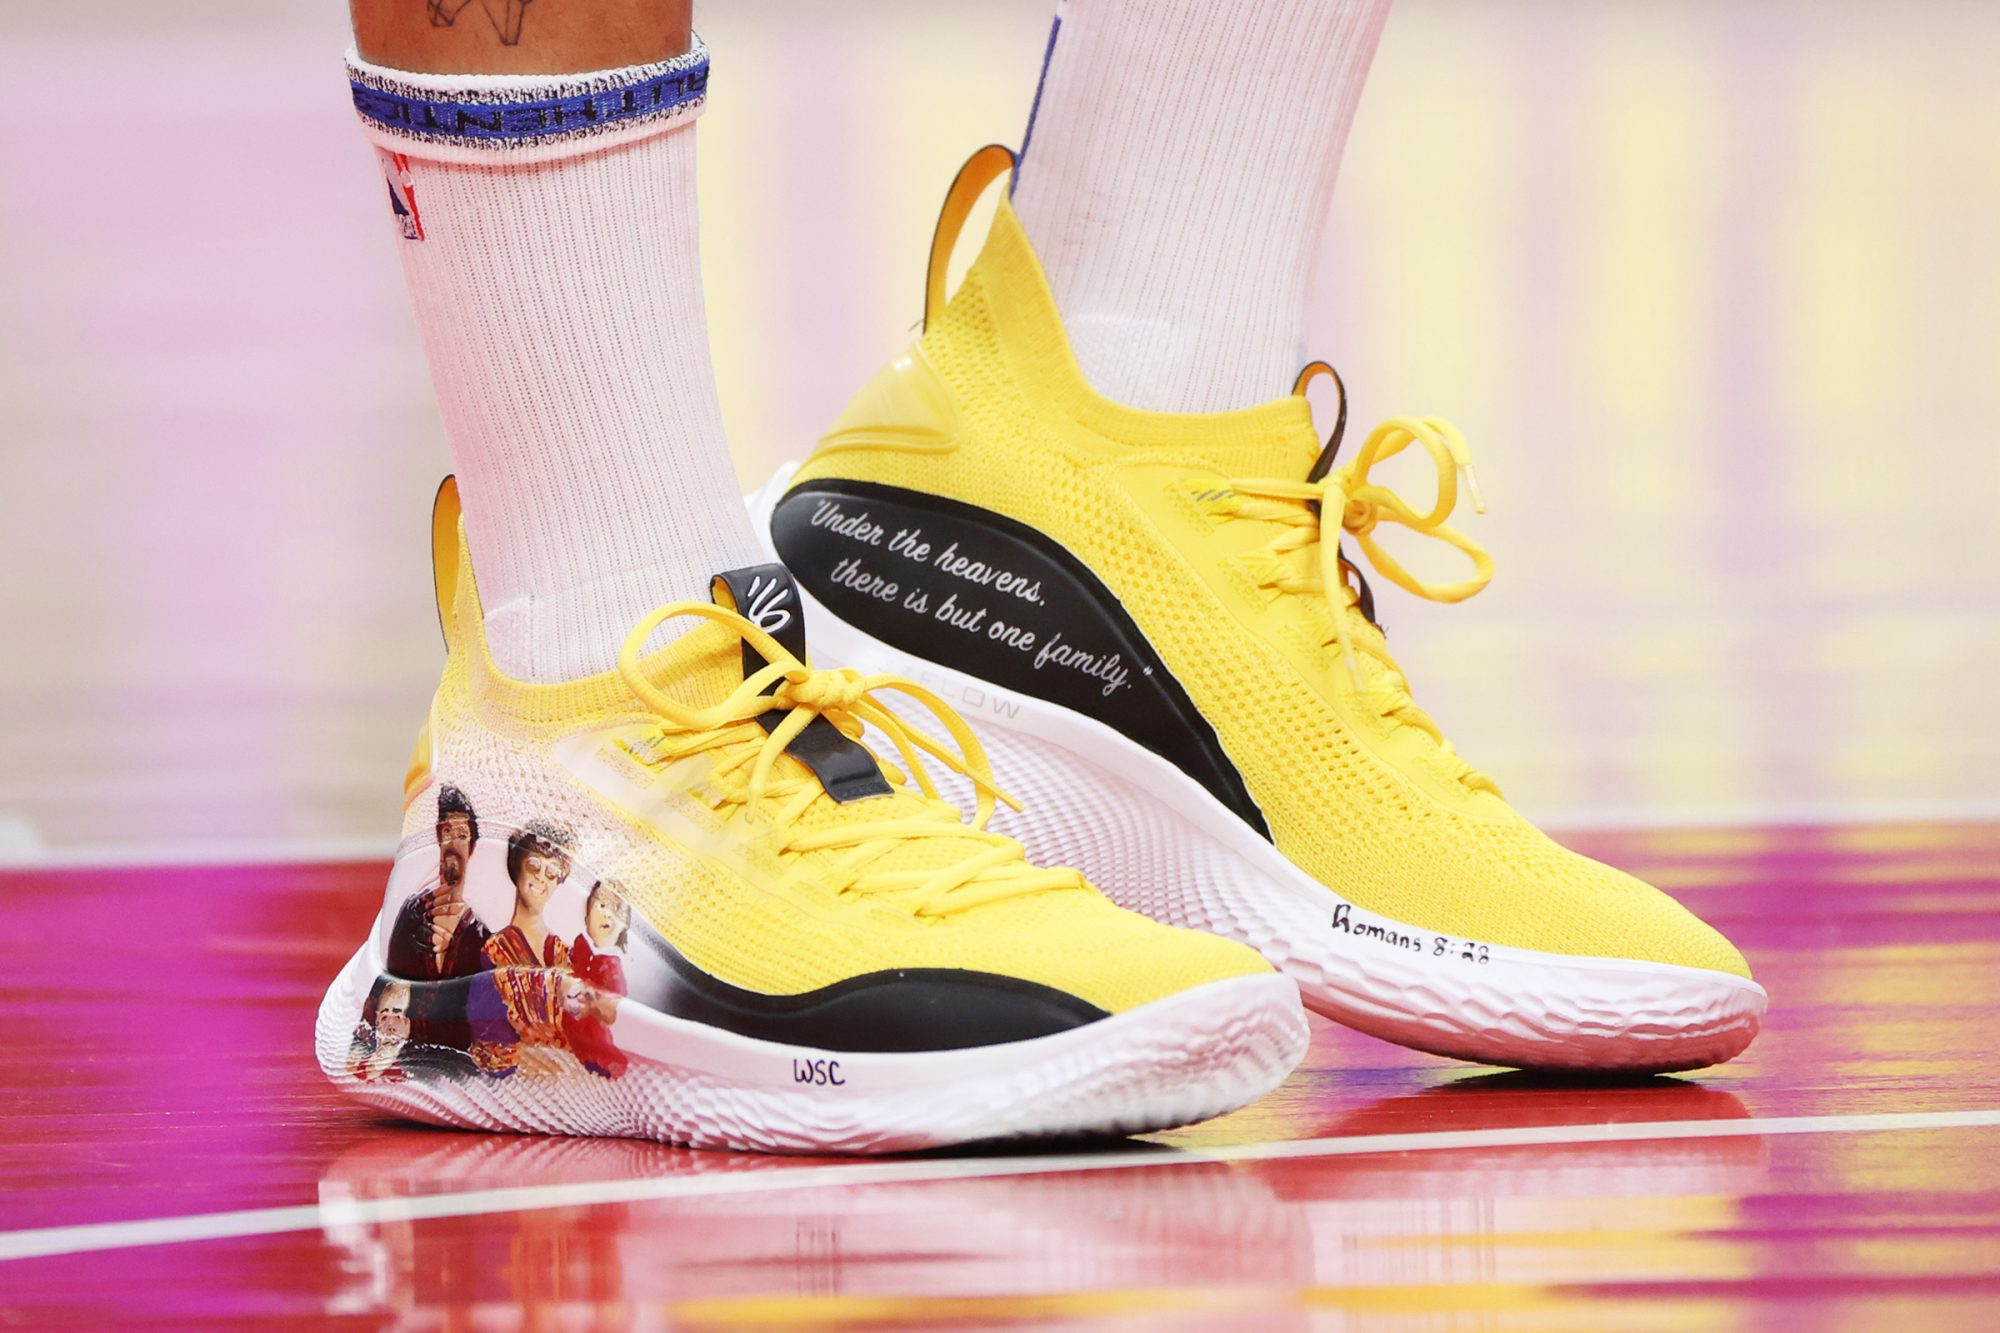 The sneakers of Stephen Curry #30 of the Golden State Warriors during the game against the Atlanta Hawks on APRIL 4, 2021 at State Farm Arena in Atlanta, Georgia